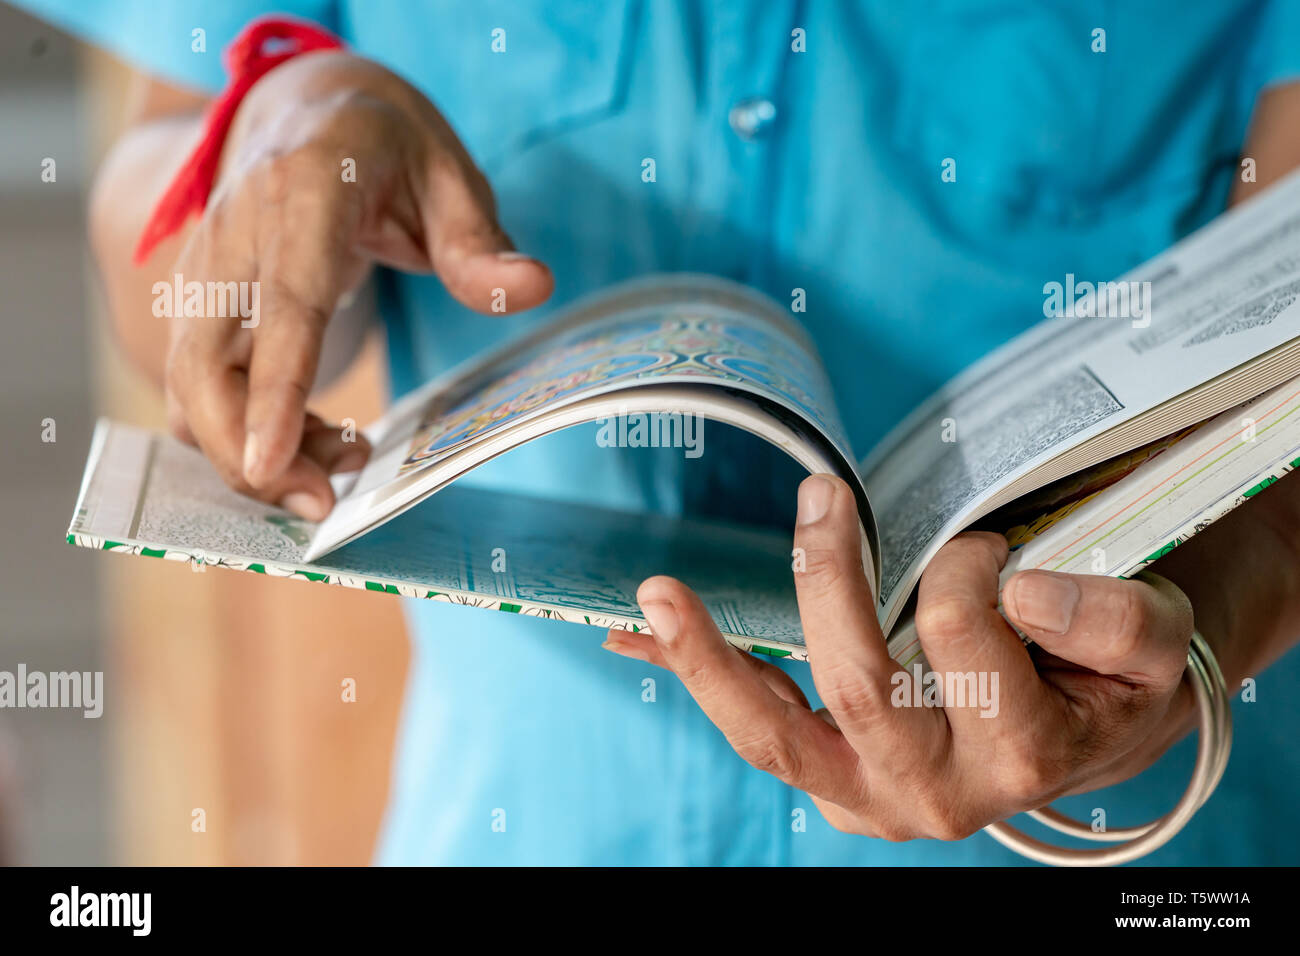 Art man is holding the Thai art book and finding the inspiration for his work. - Stock Image